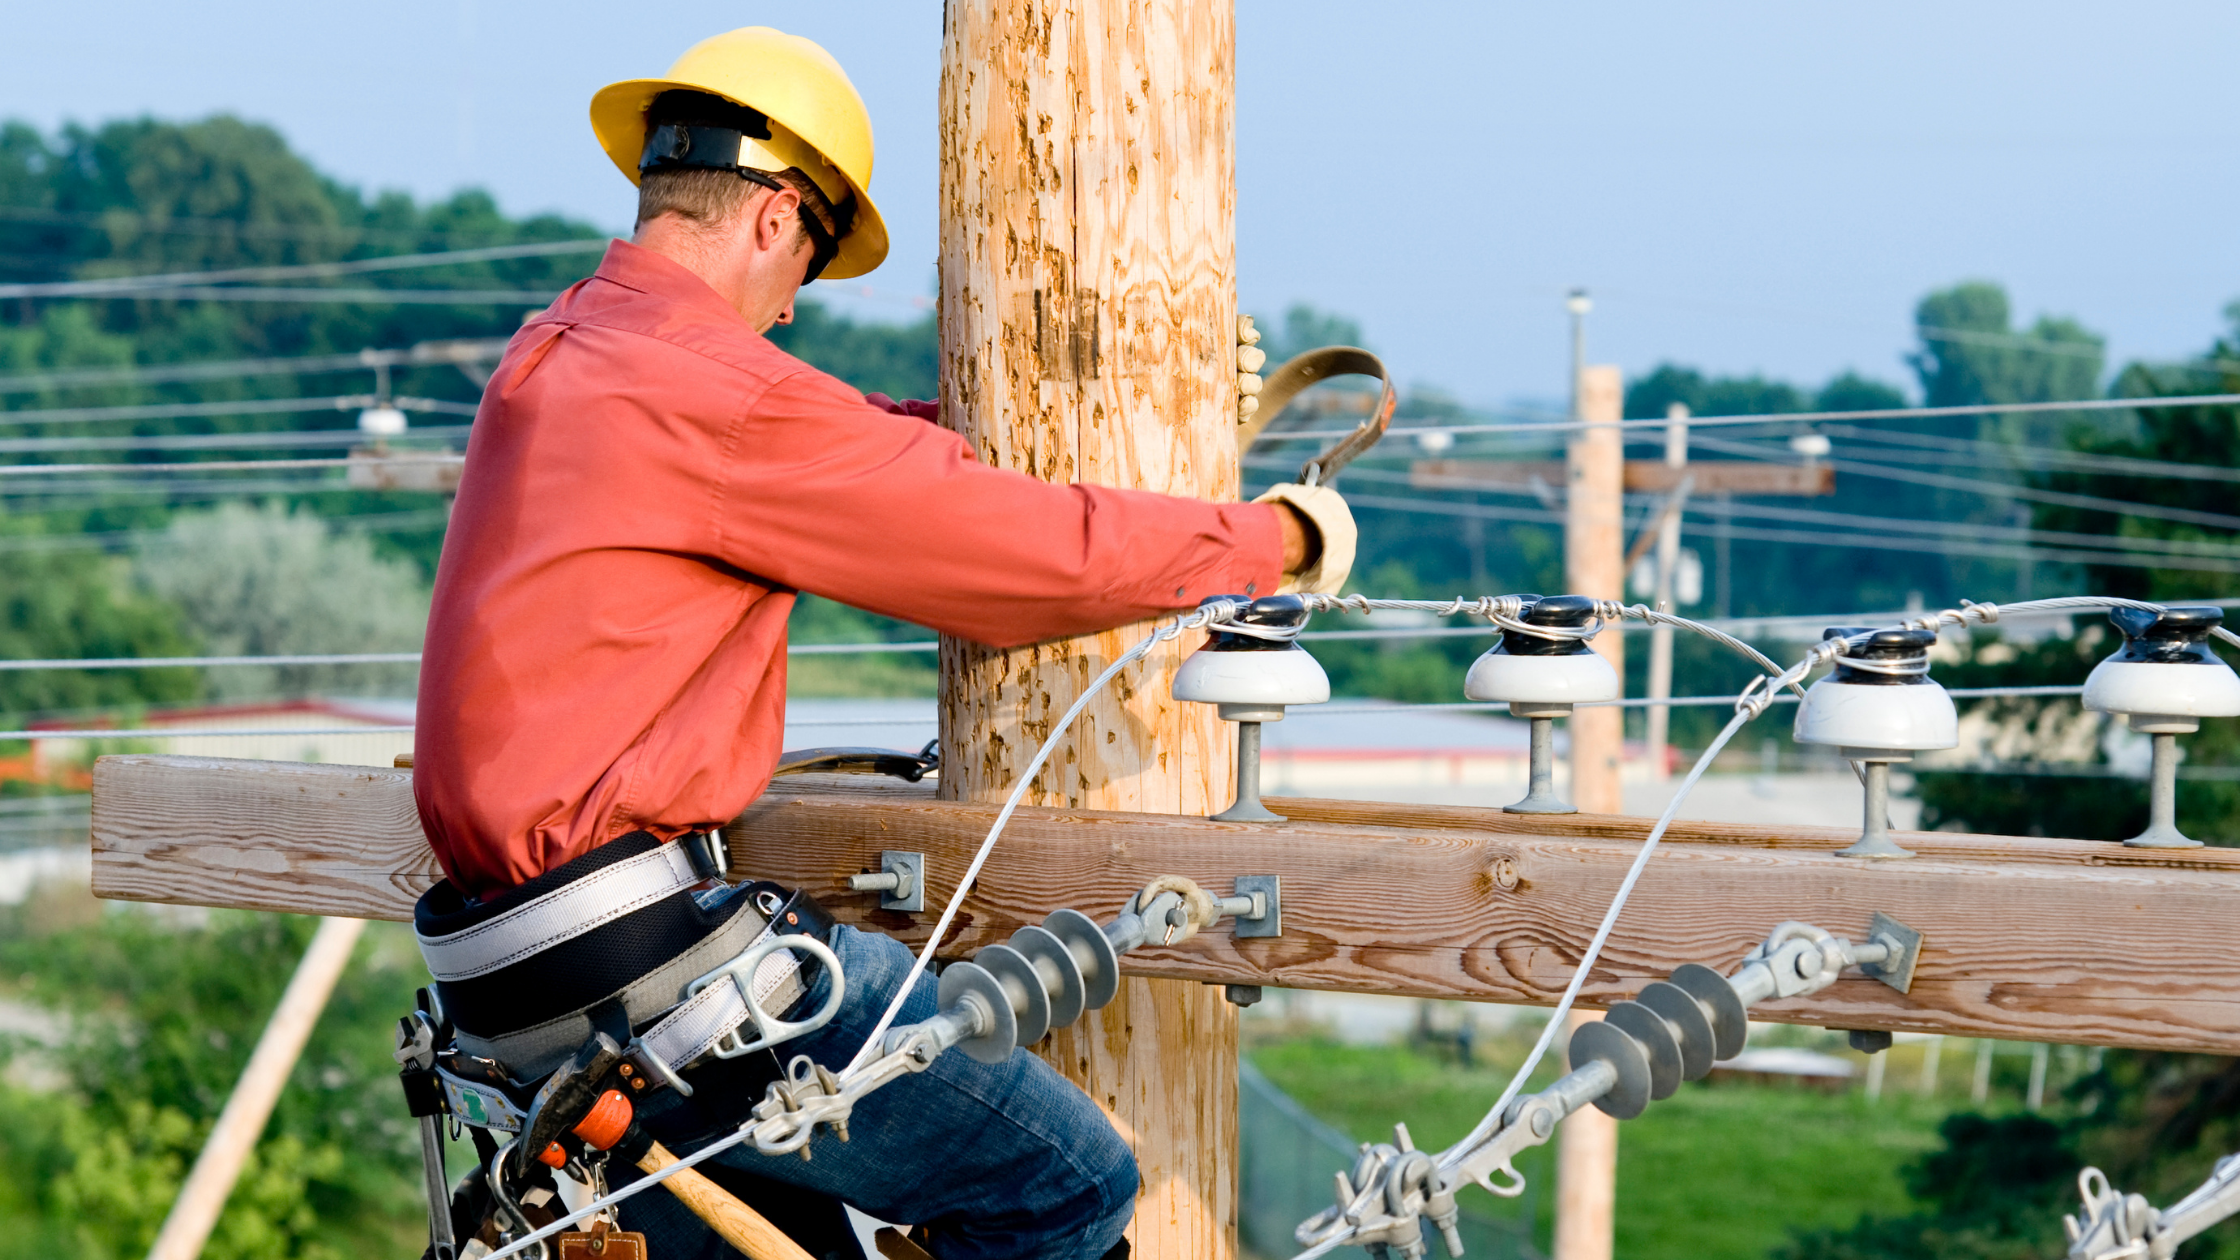 Electrical Worker on Utility Pole